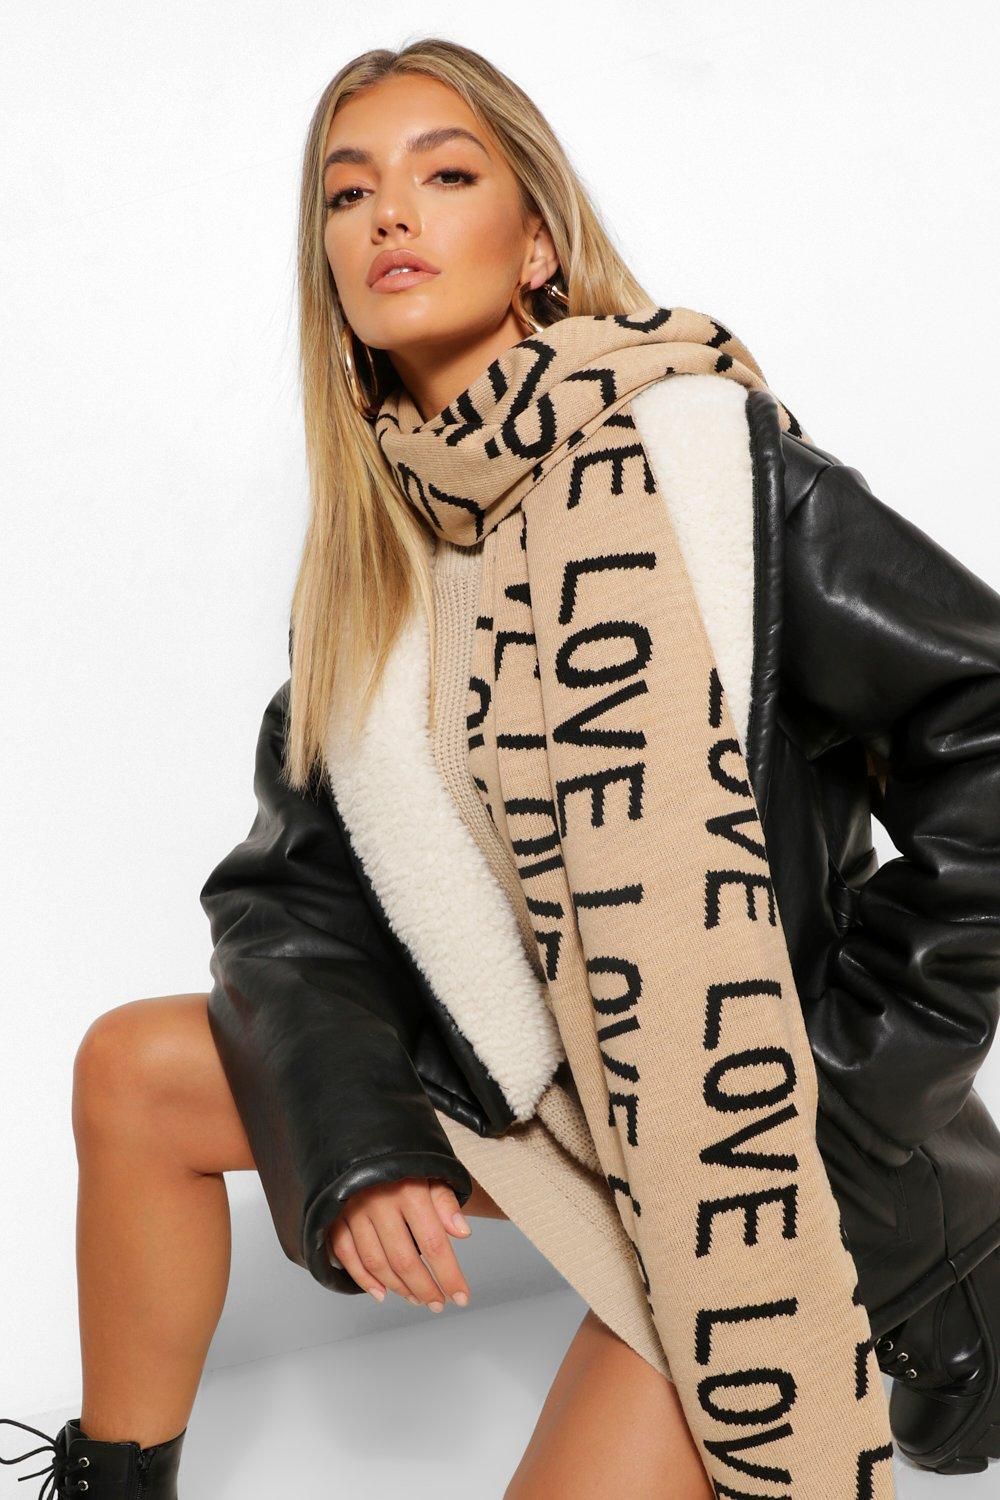 New Arrivals - Love Scarf Accessories